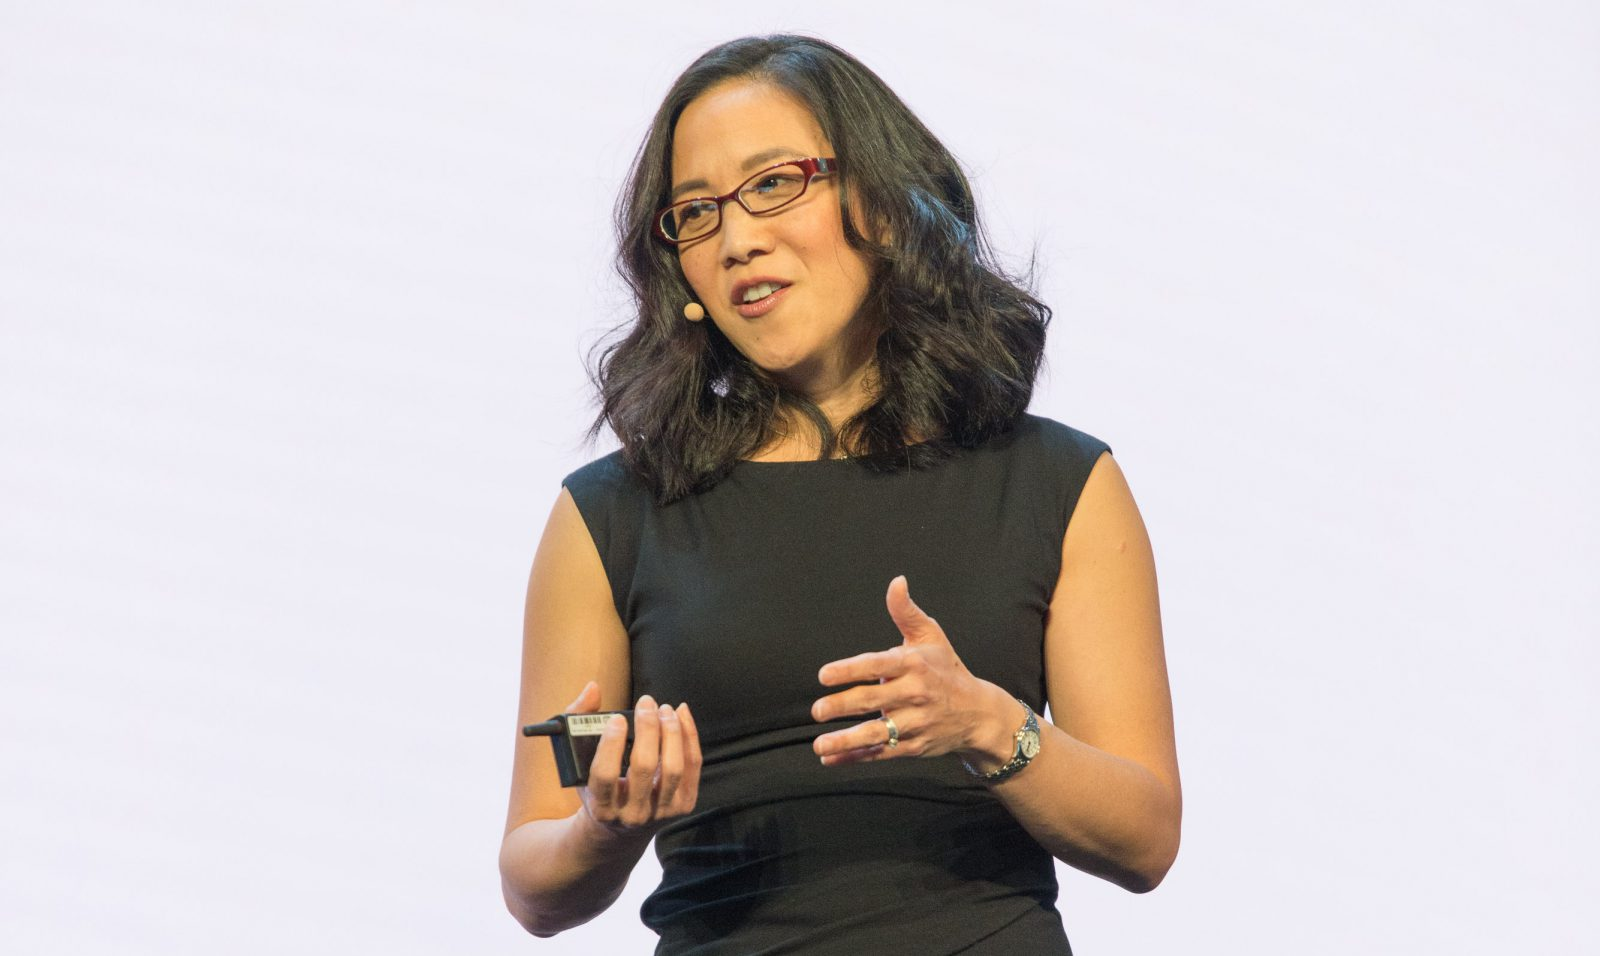 """You're no genius"": Her father's shutdowns made Angela Duckworth a world expert on grit"